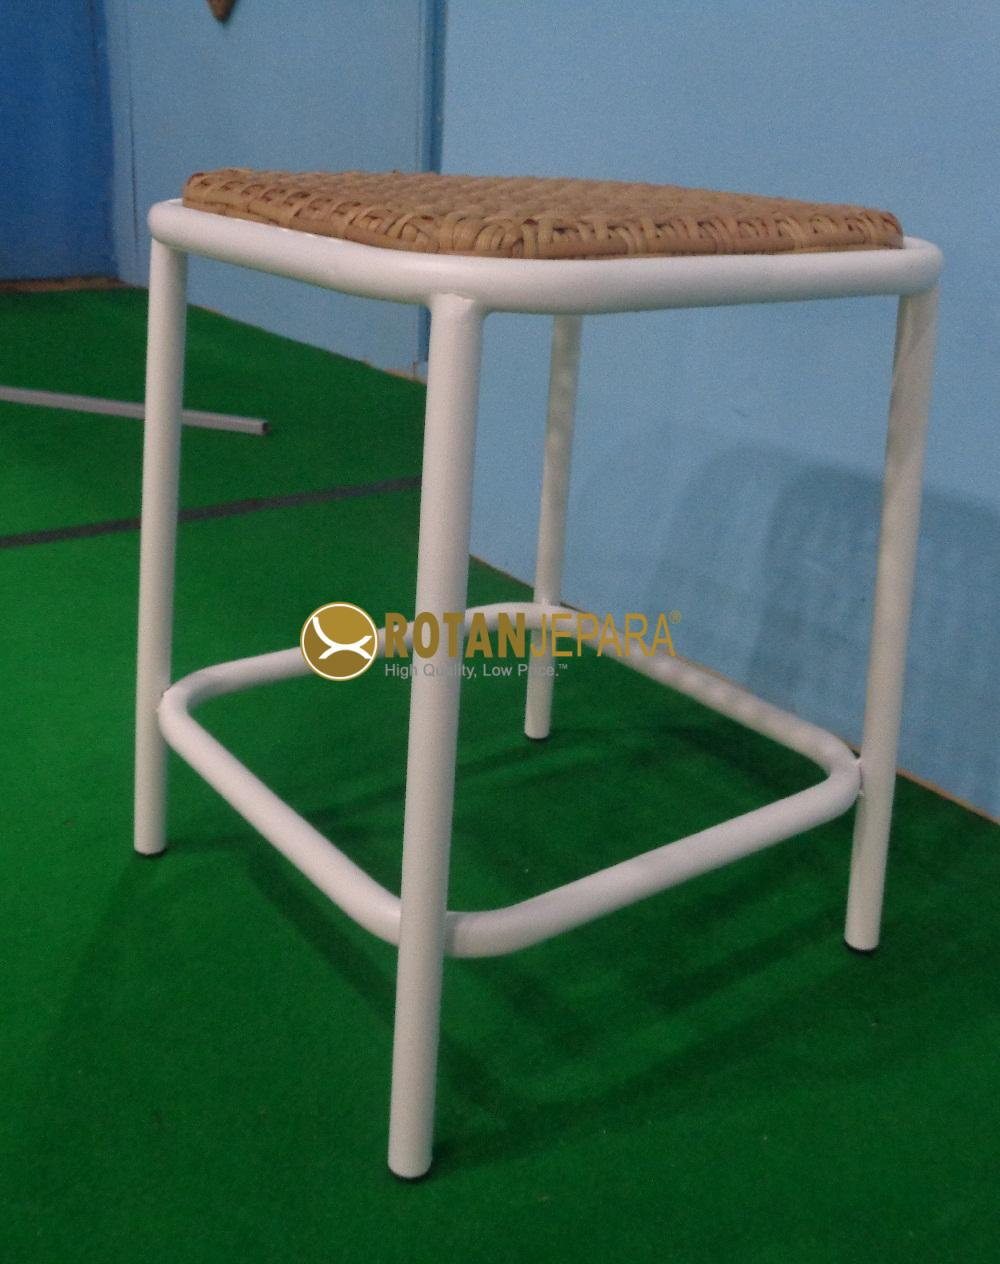 Parc Counter Stool Grrad Hotel Furniture